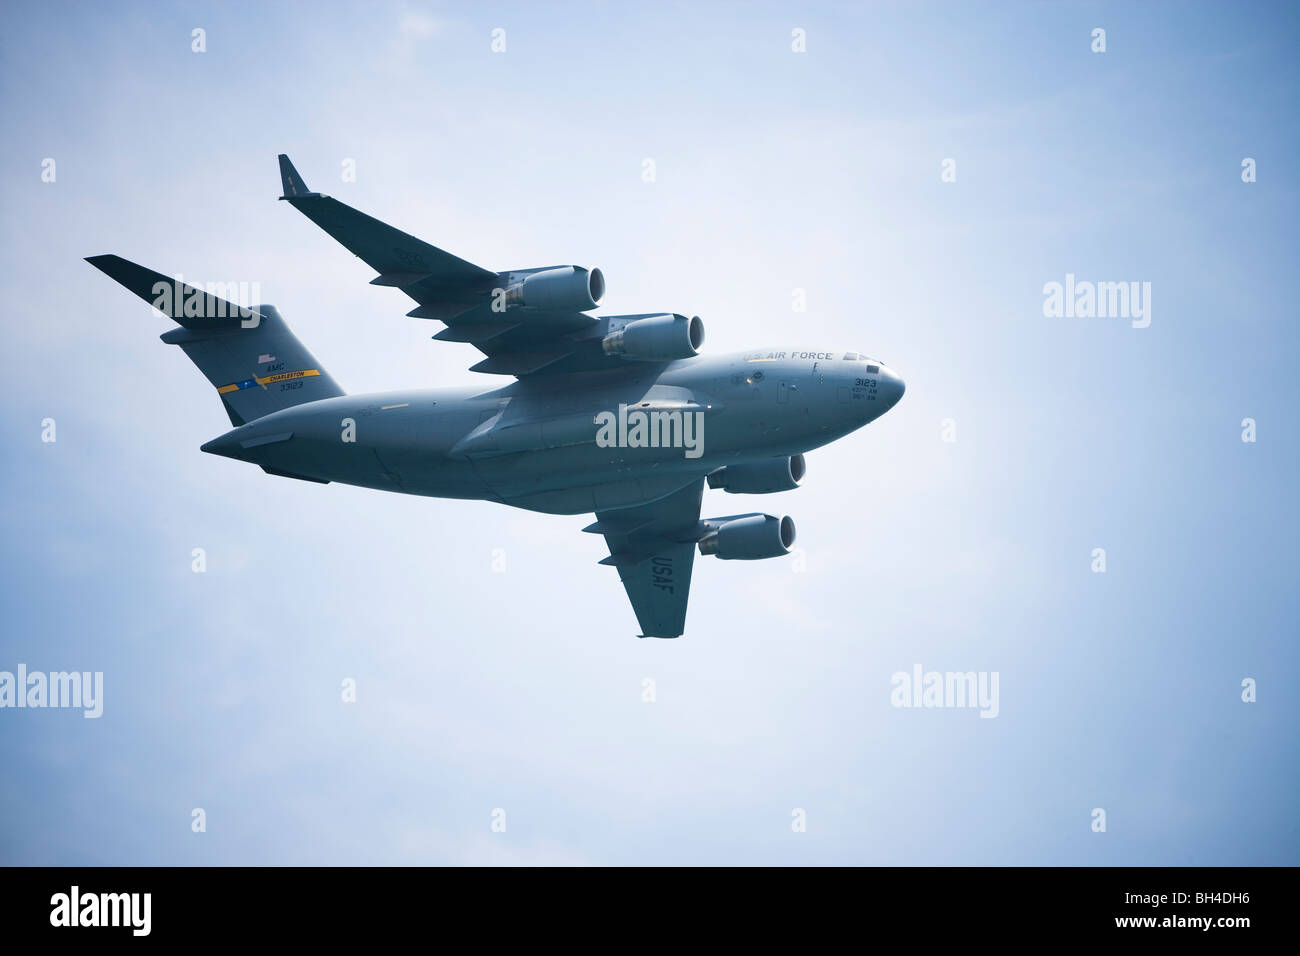 US Air Force plane - Stock Image